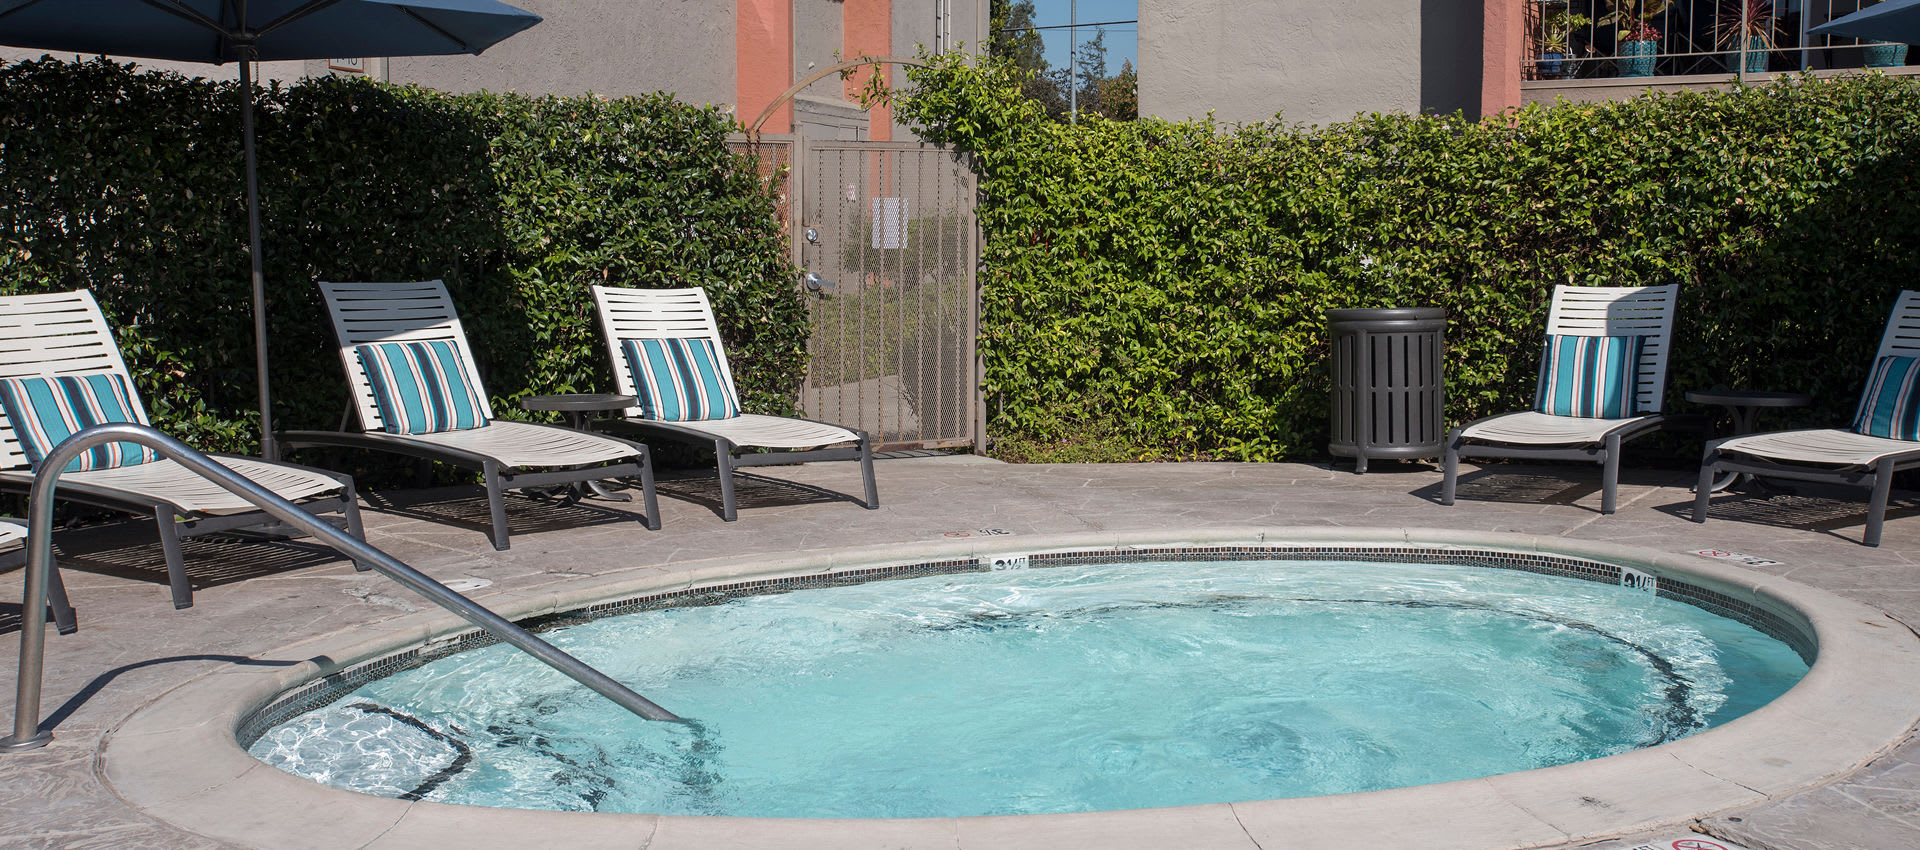 Hot tub at La Valencia Apartment Homes in Campbell, California